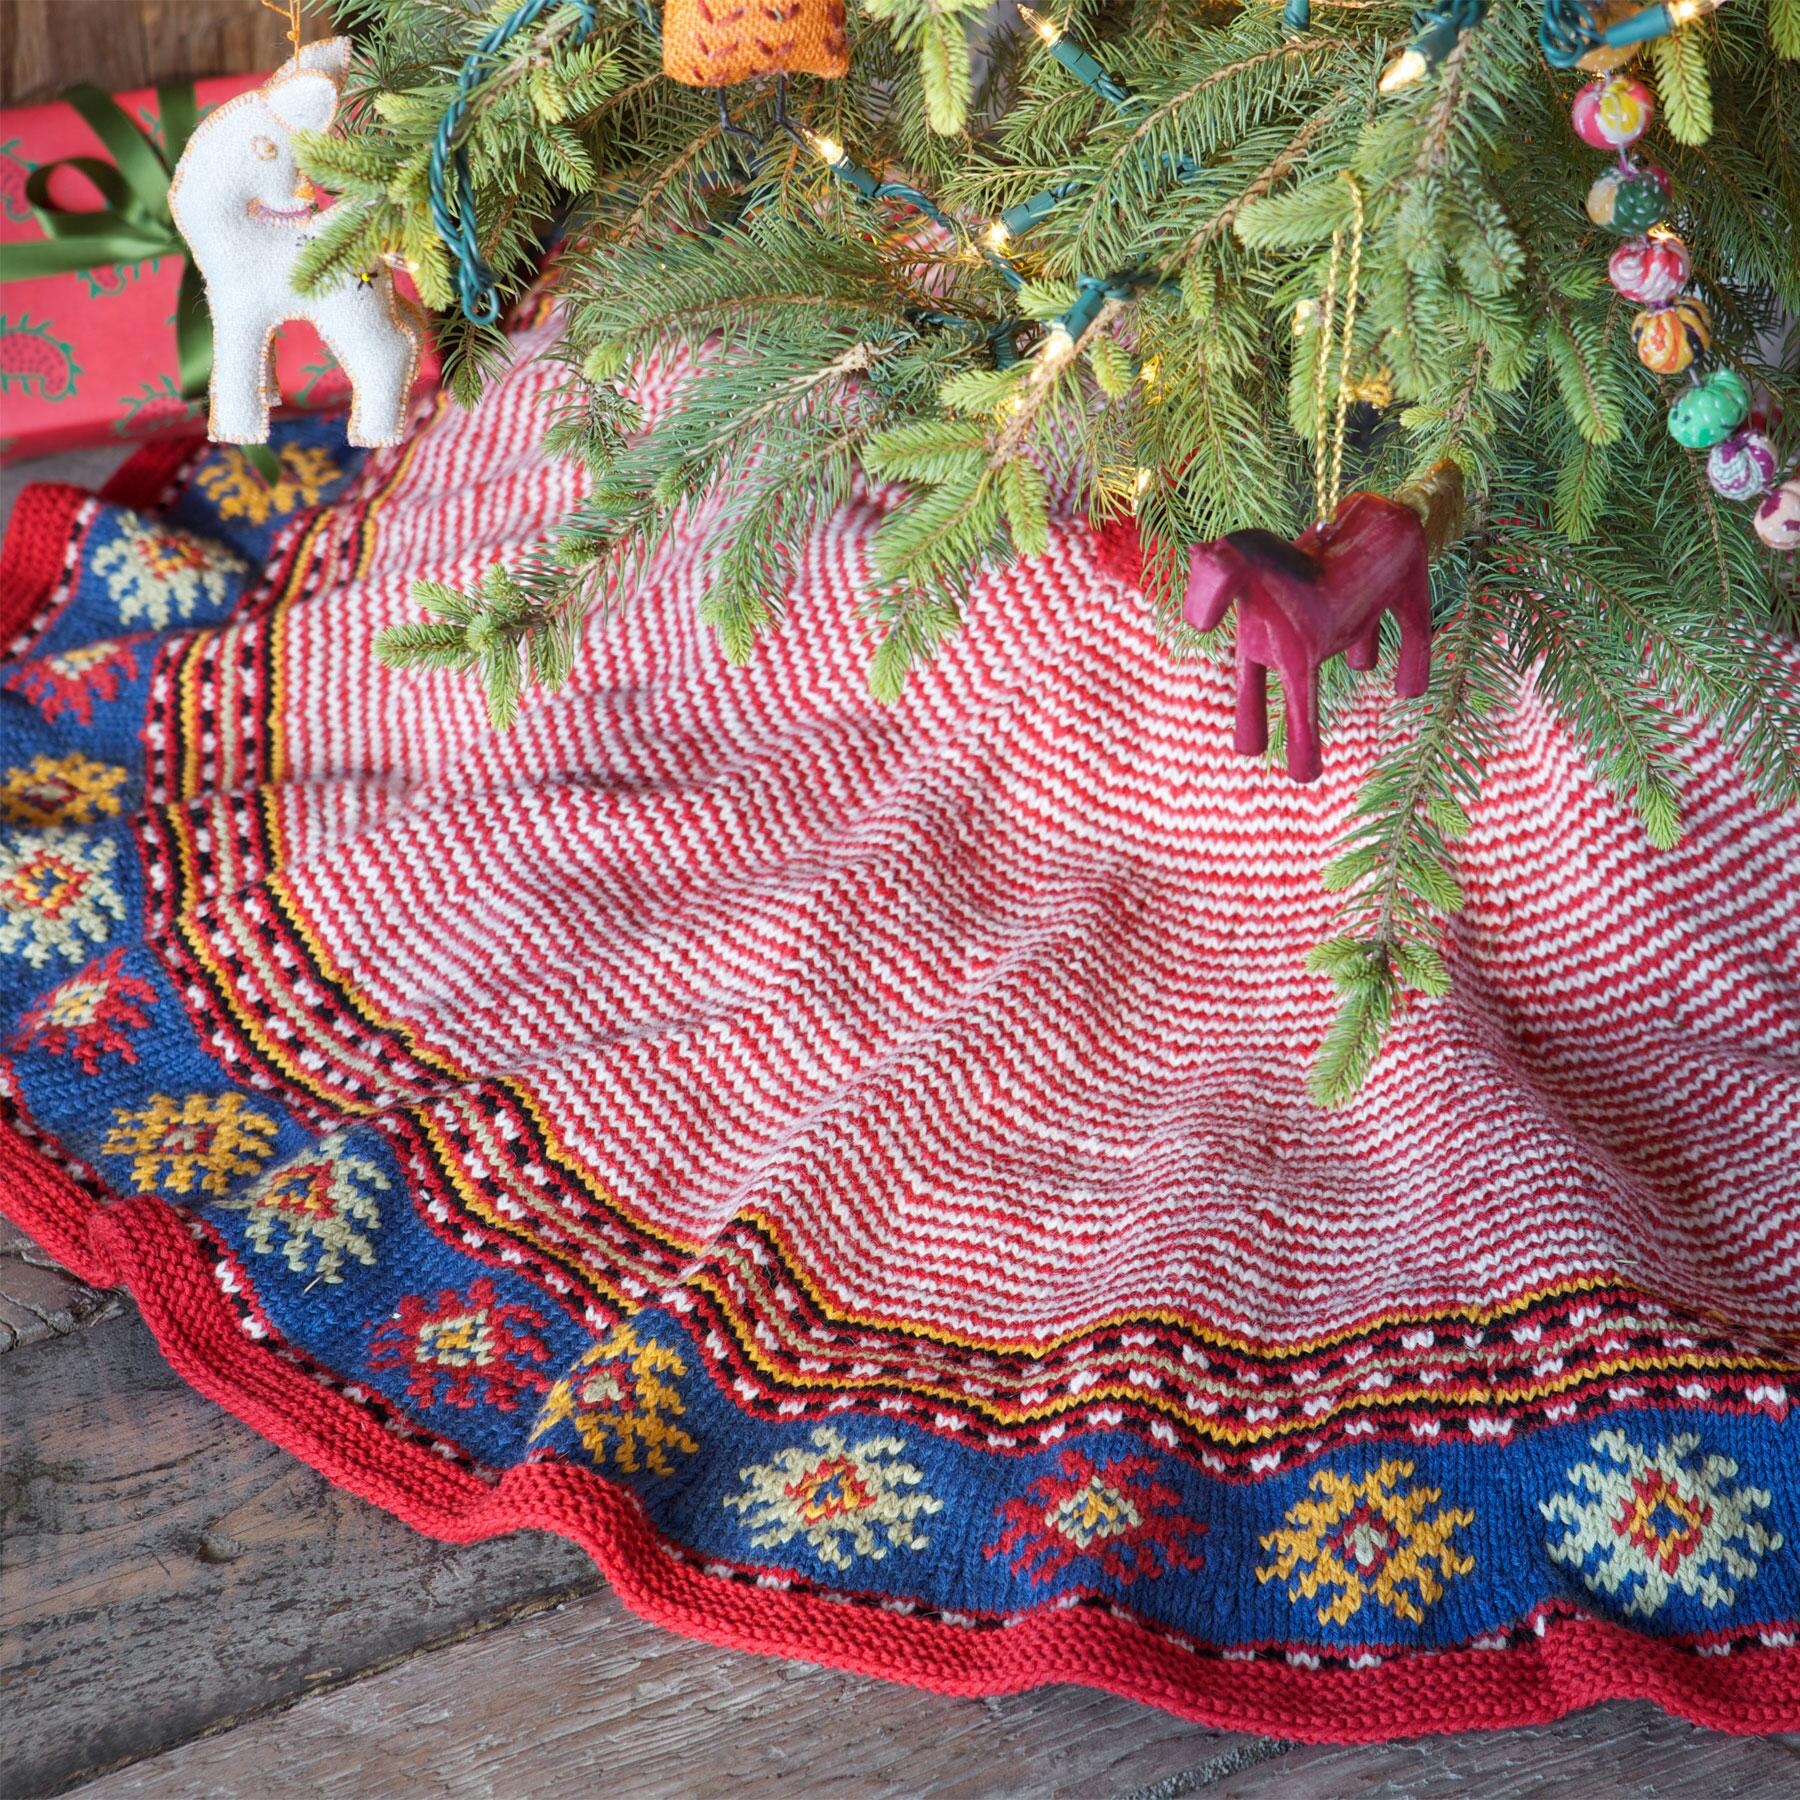 HEIRLOOM CANDY CANE TREE SKIRT: View 1